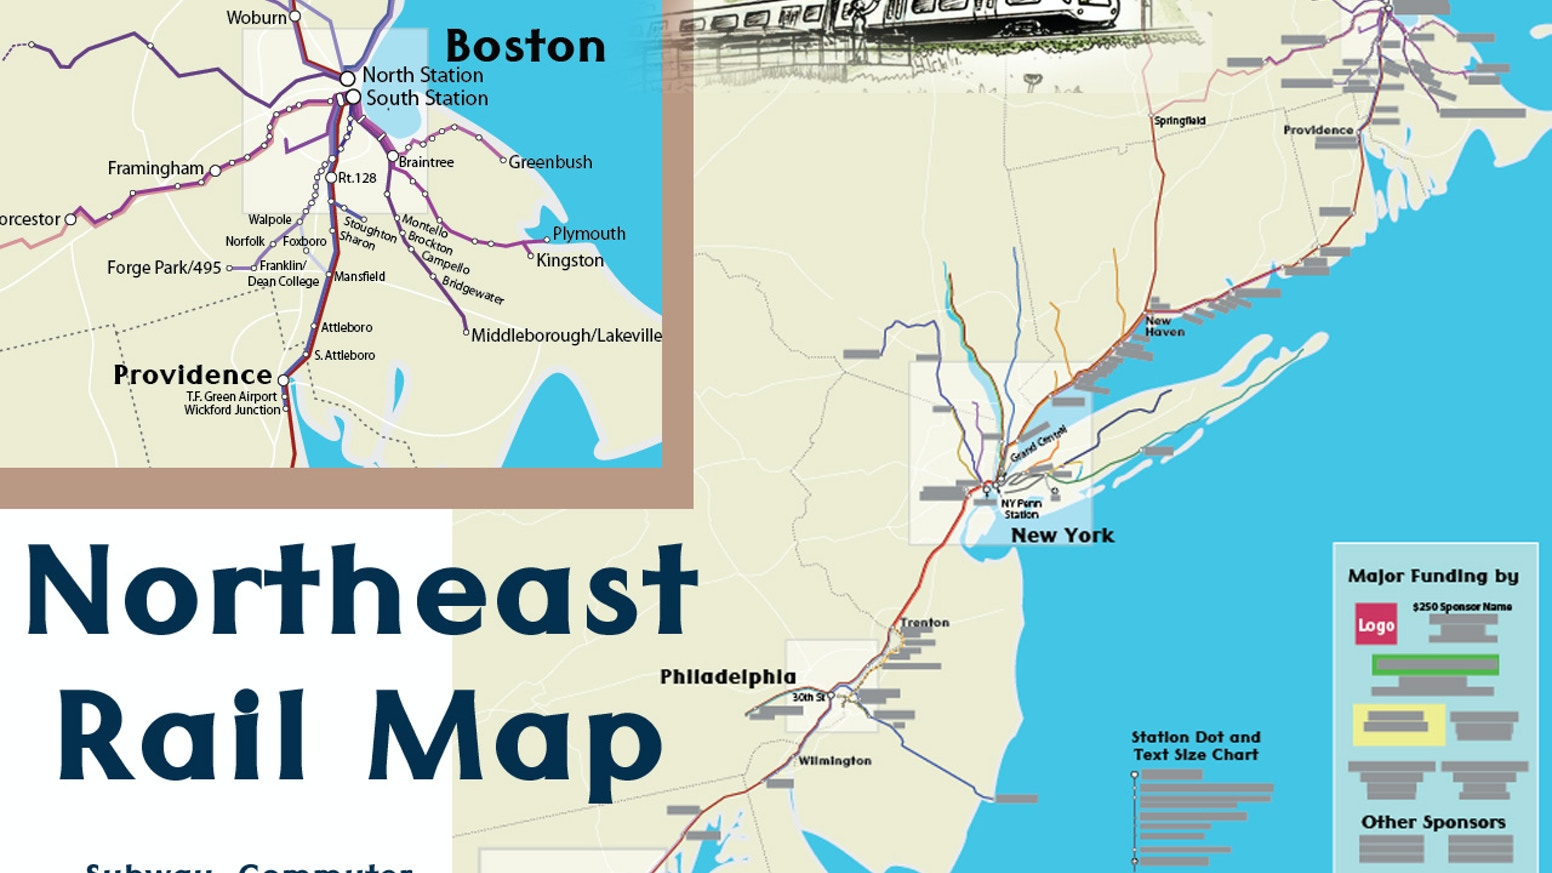 Northeast Us Rail Map By Alfred Kickstarter - North-carolina-map-of-us